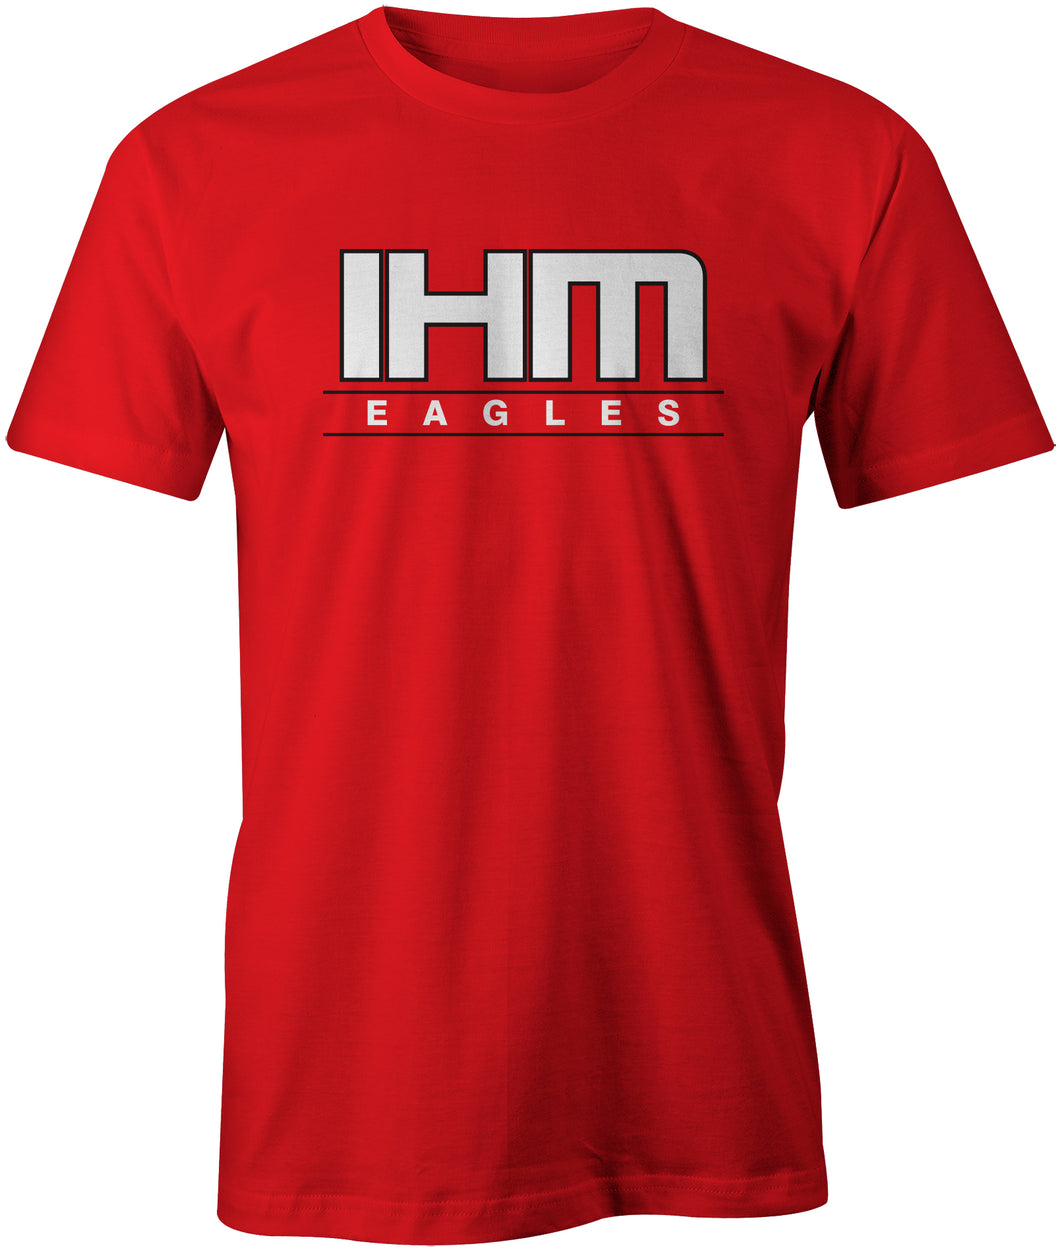 Red Eagles T-Shirt